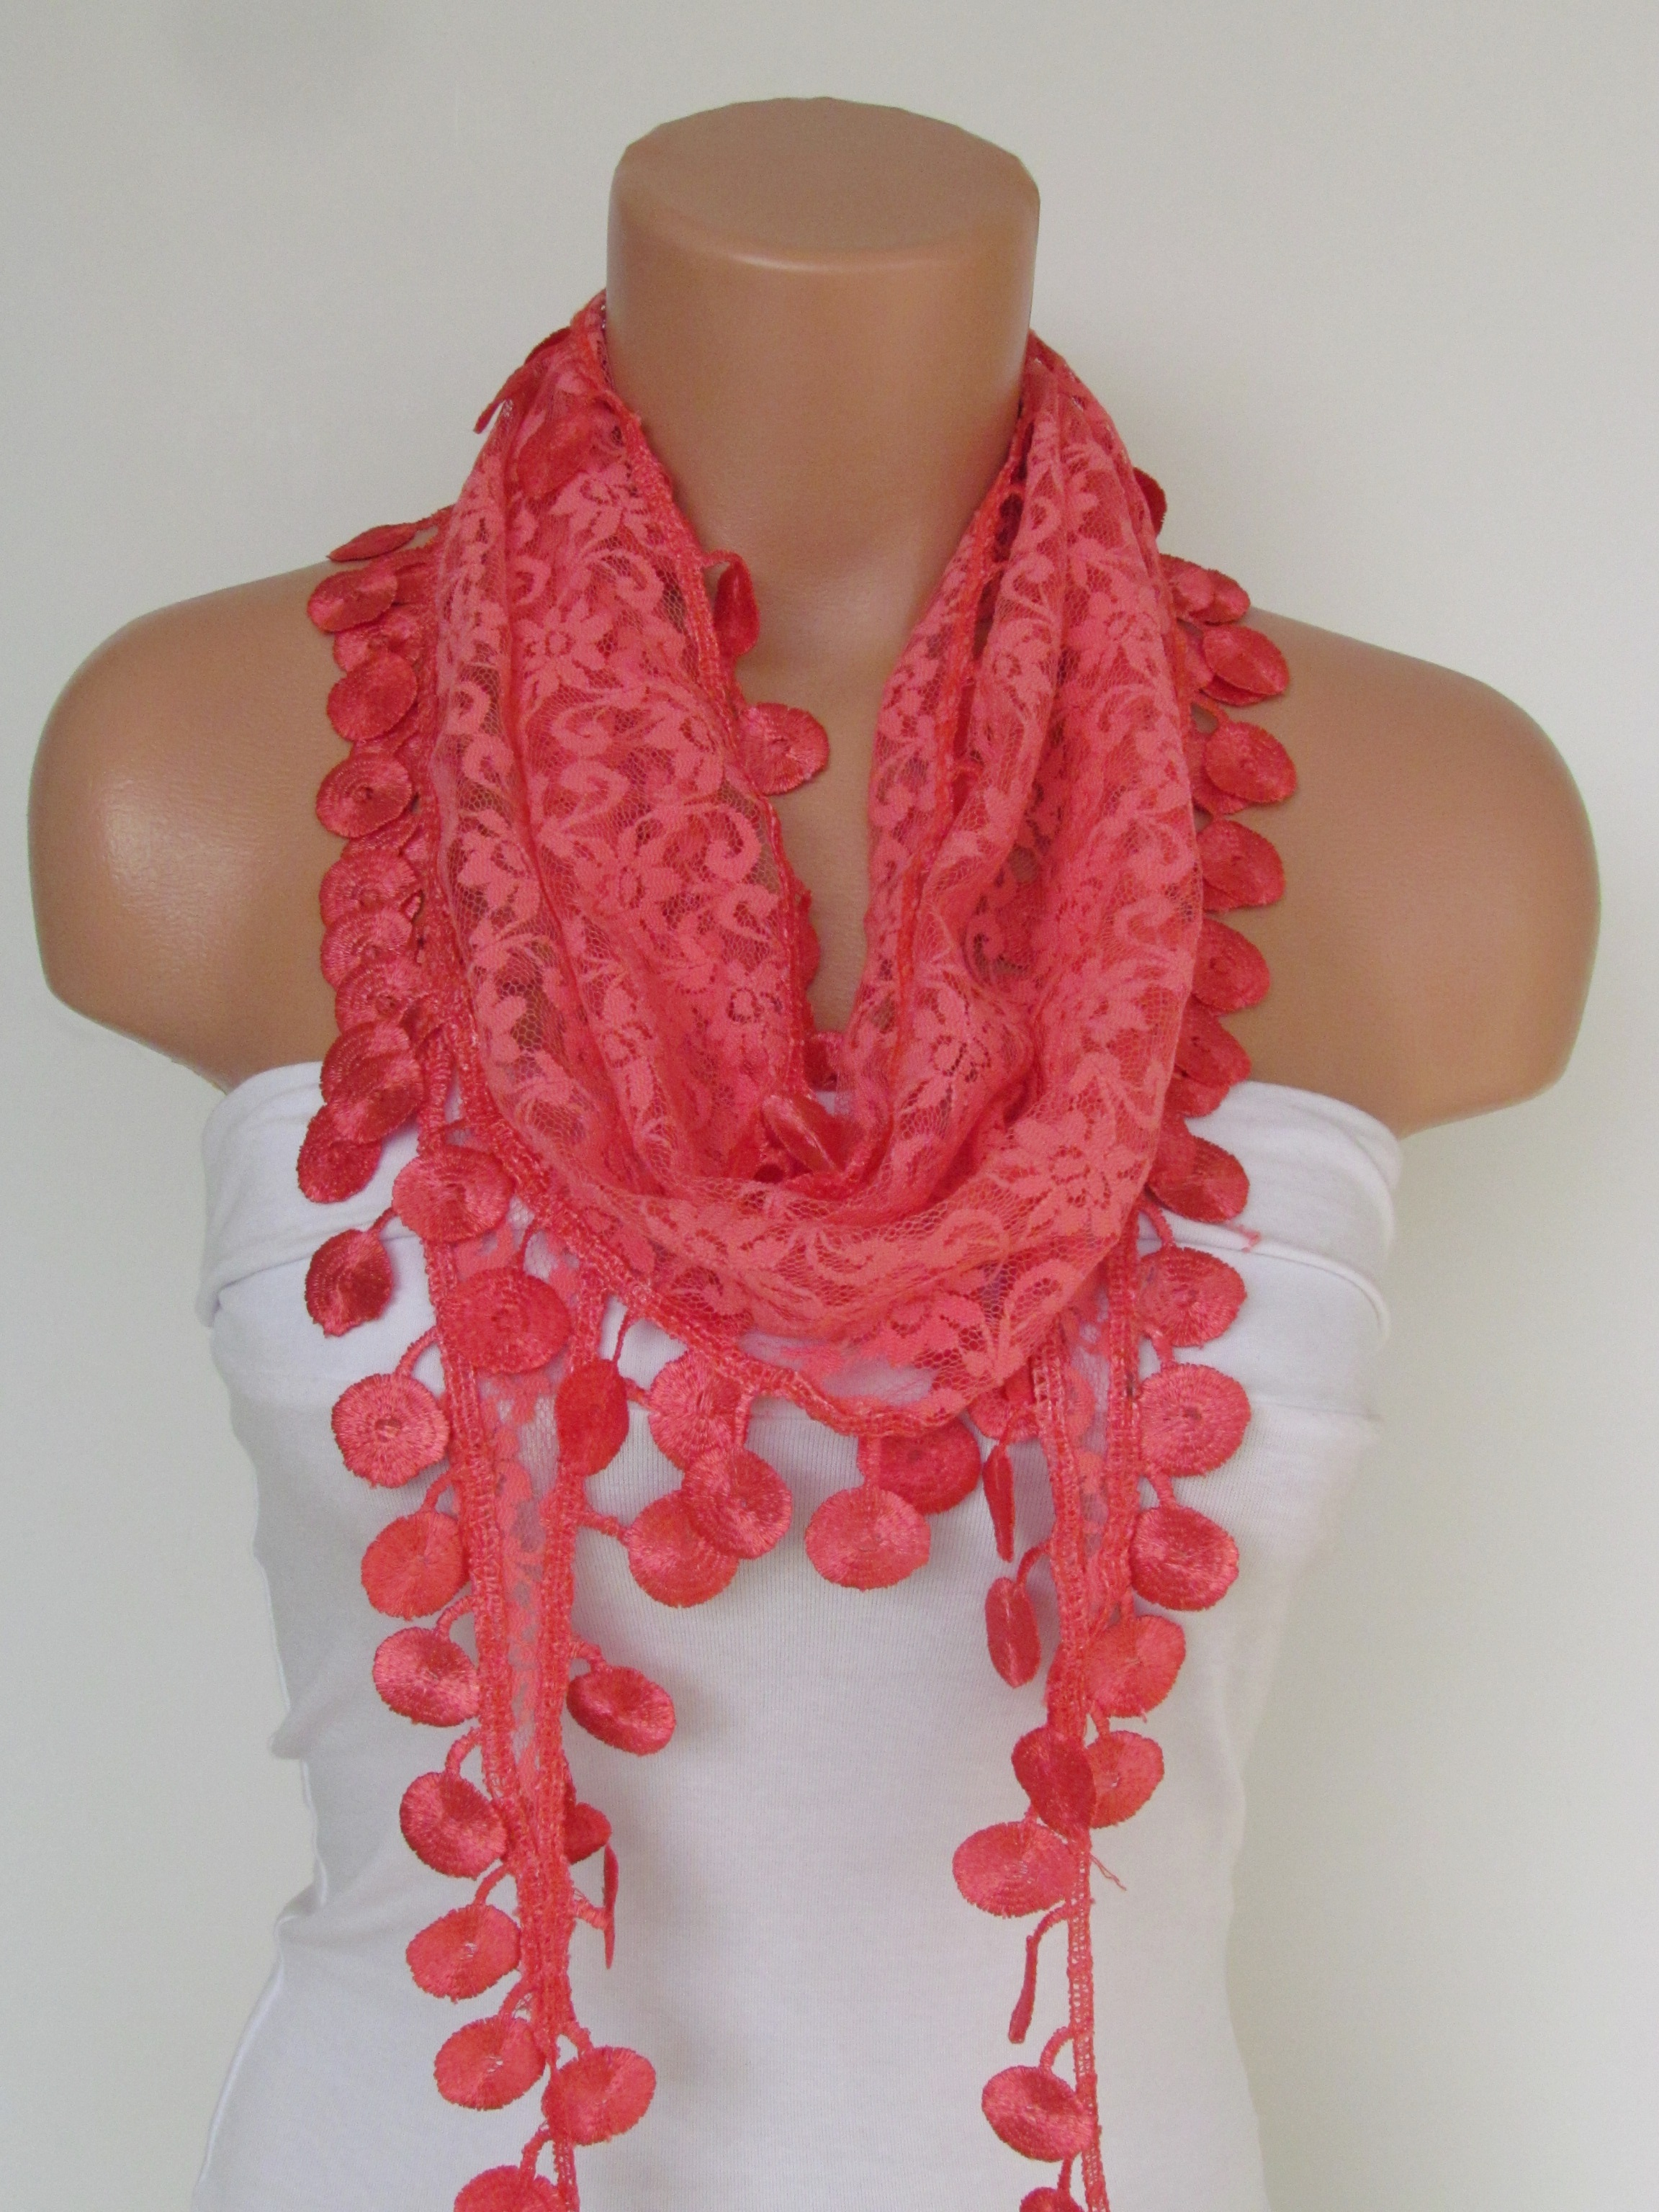 59453417c8c78 Indianred Lace Scarf With Fringe-Fall Fashion Scarf-Headband-Necklace- Infinity  Scarf-New Season Acc on Luulla